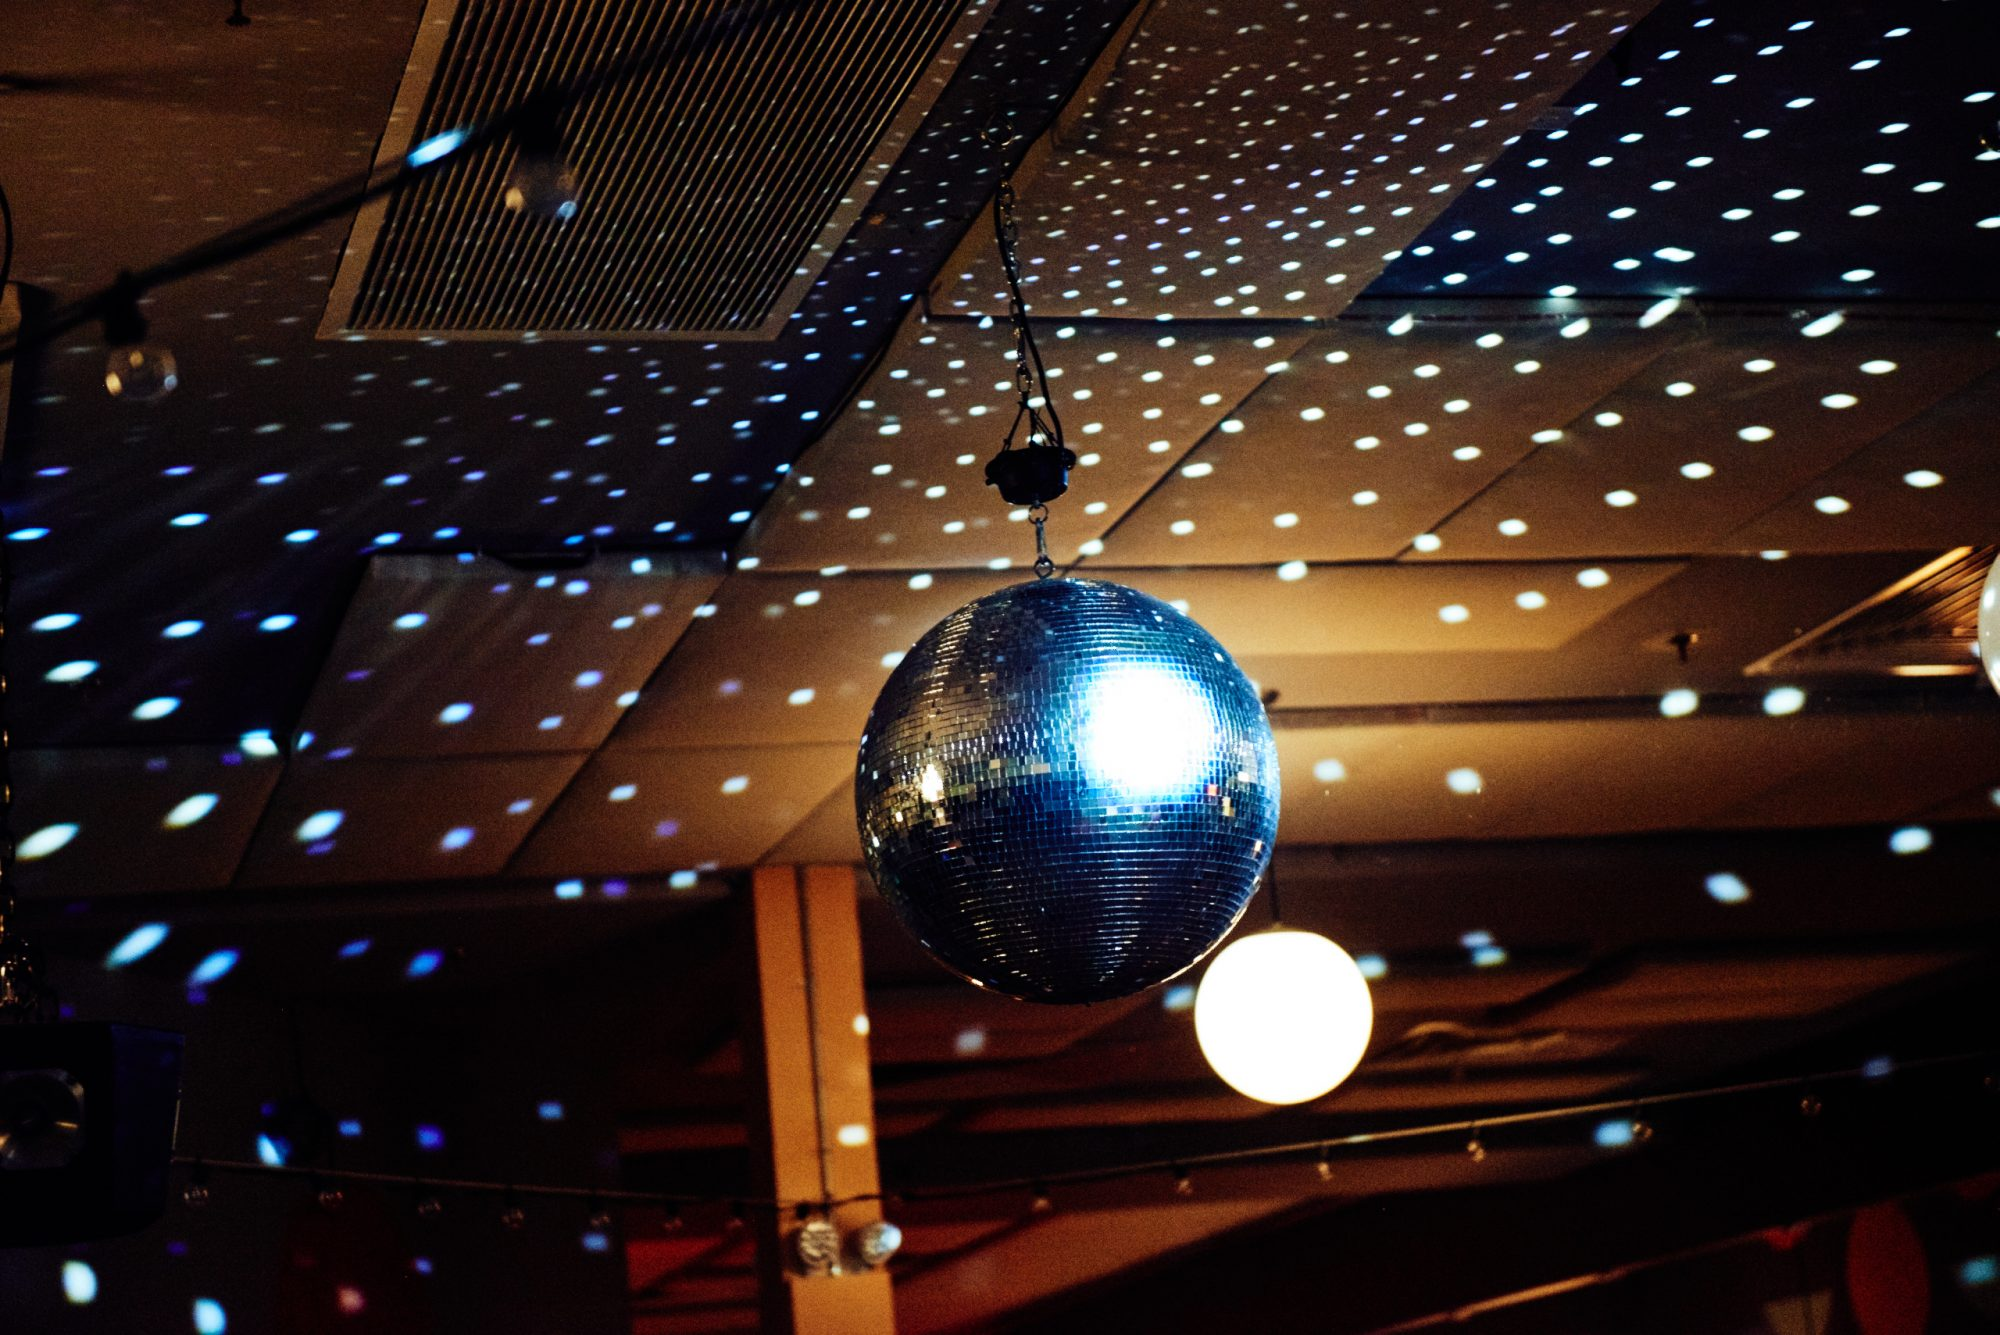 indoors-at-nowadays-disco-ball-FT-BLOG118.jpg